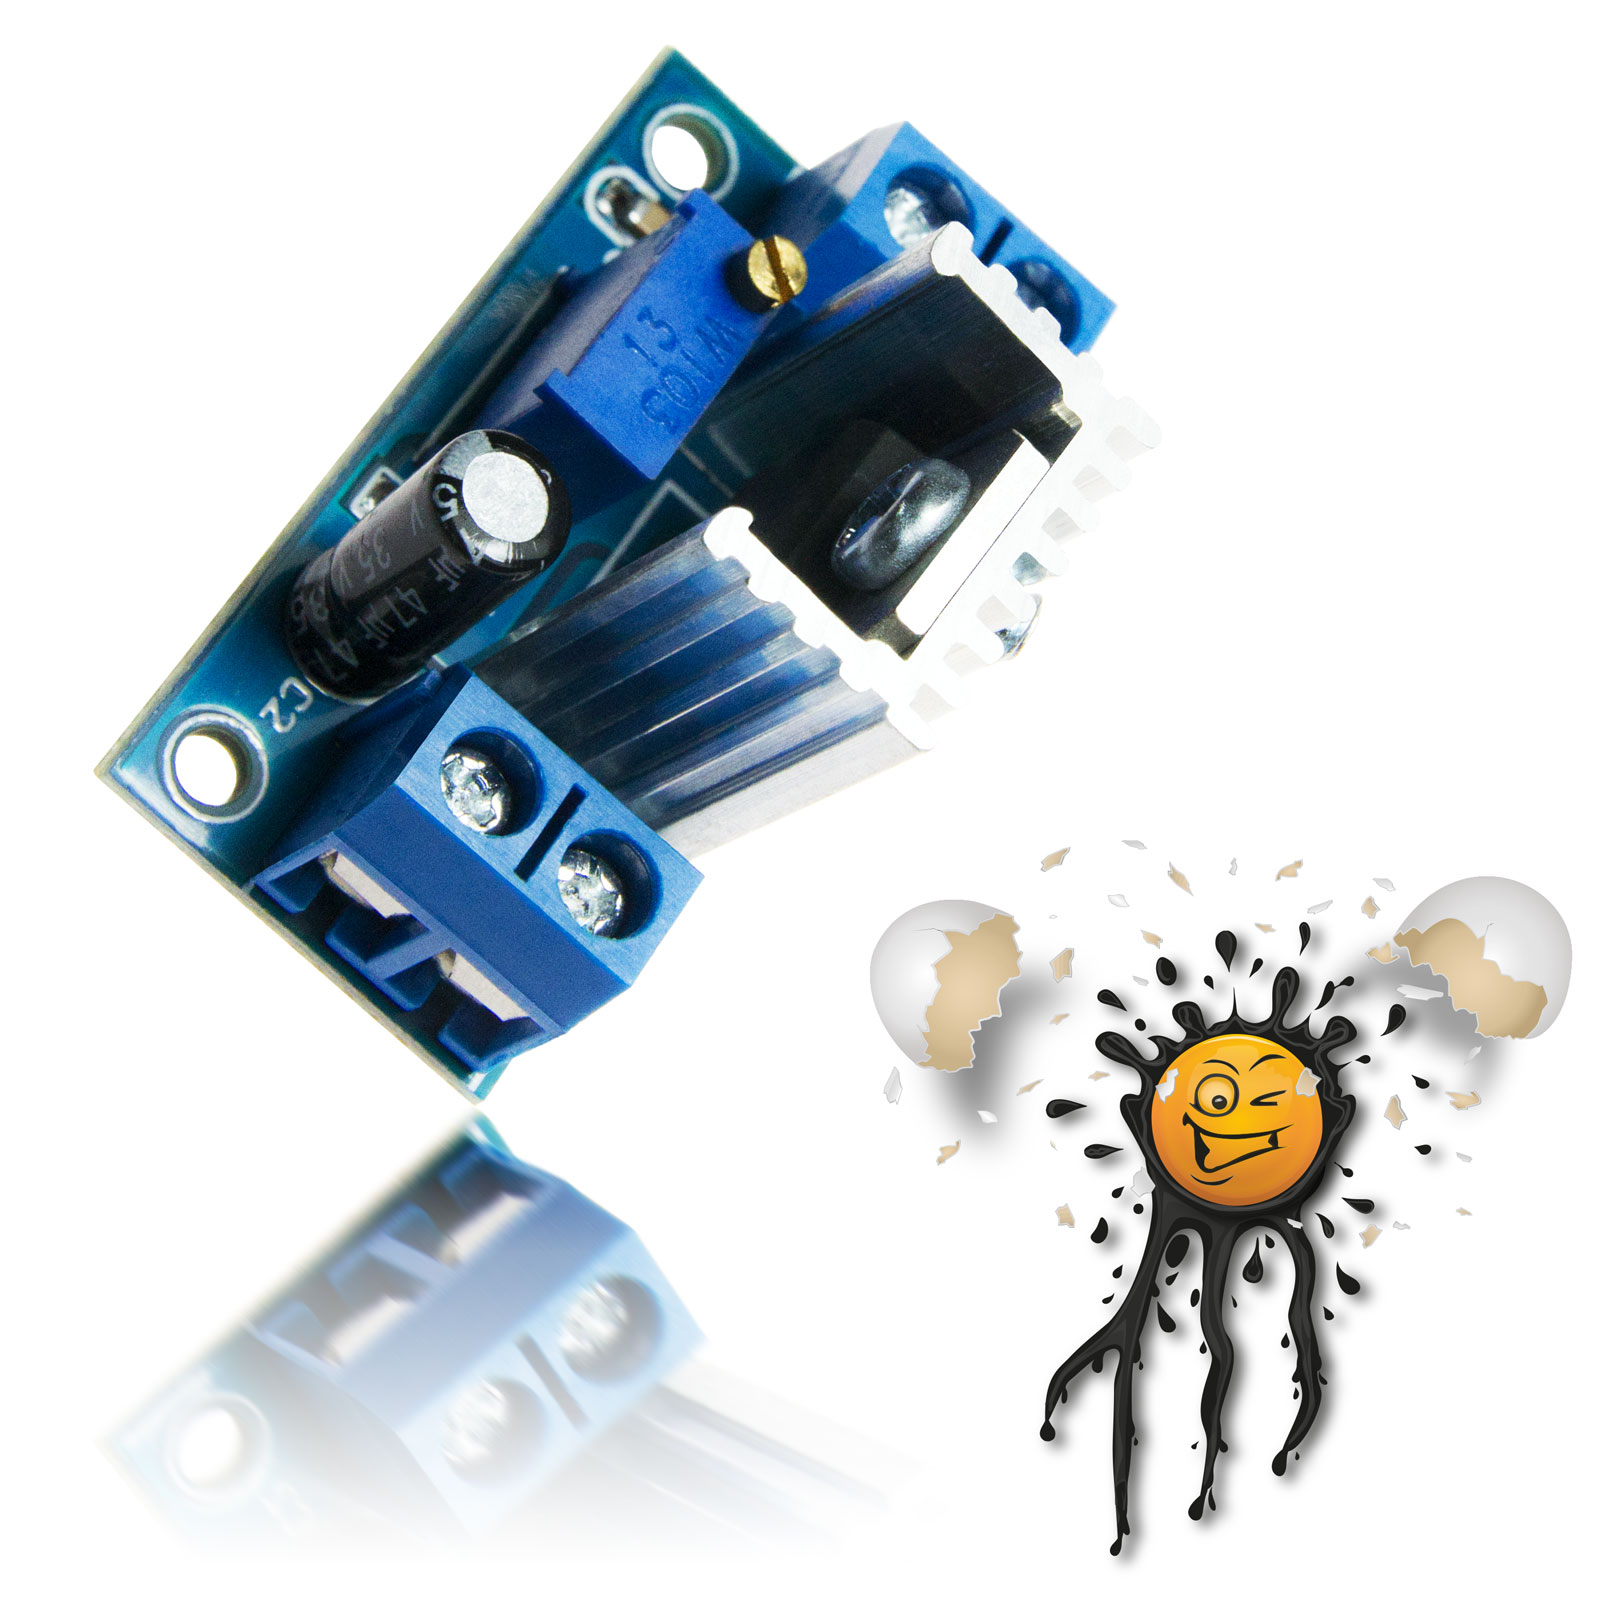 LM317 DC-DC Step Down Buck Converter